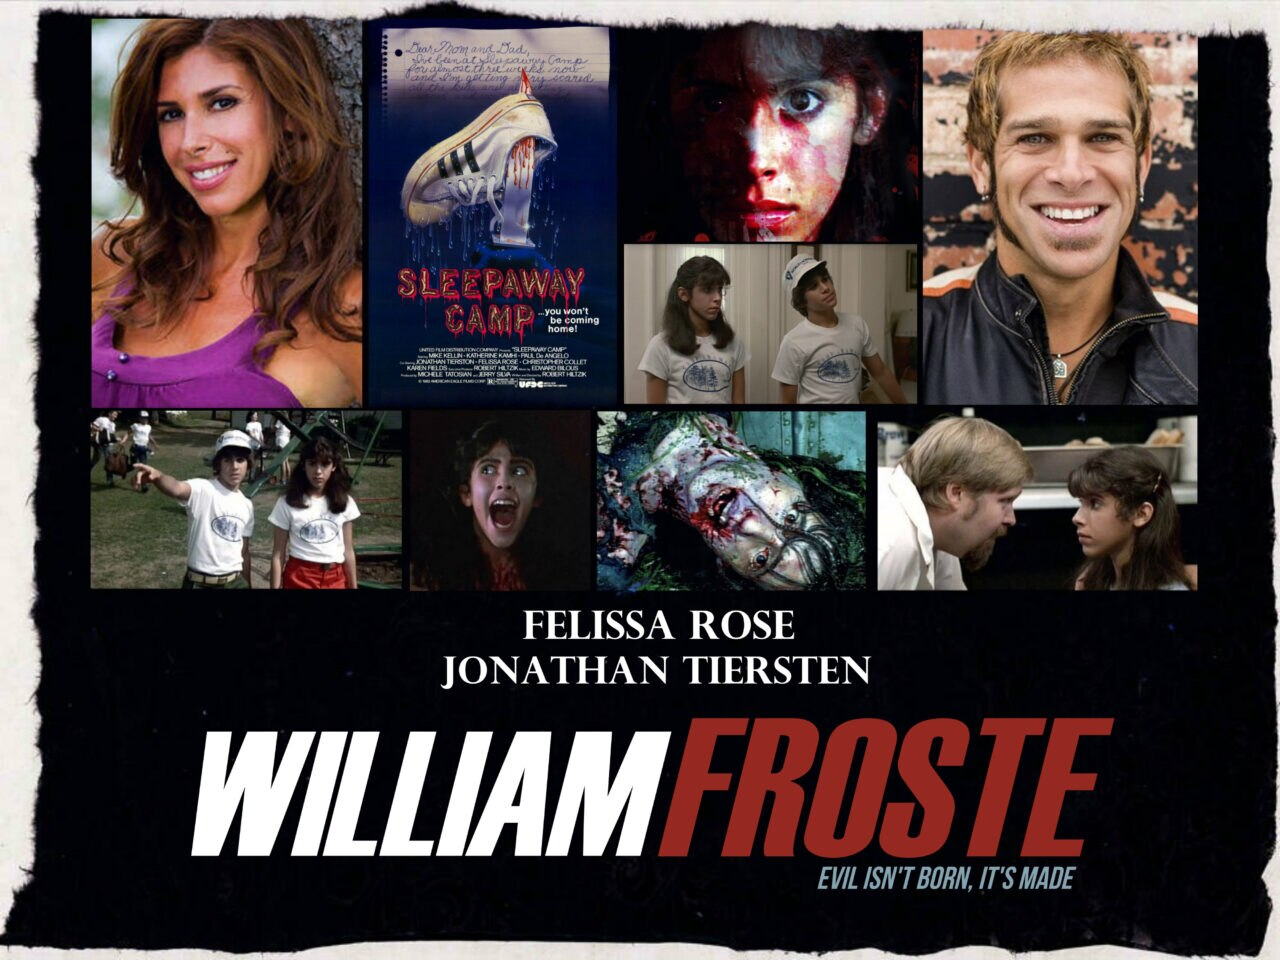 FELISSA ROSE JONATHAN TIERSTEN scaled - Sleepaway Camp Alumns Felissa Rose and Jonathan Tiersten Added to William Froste Cast